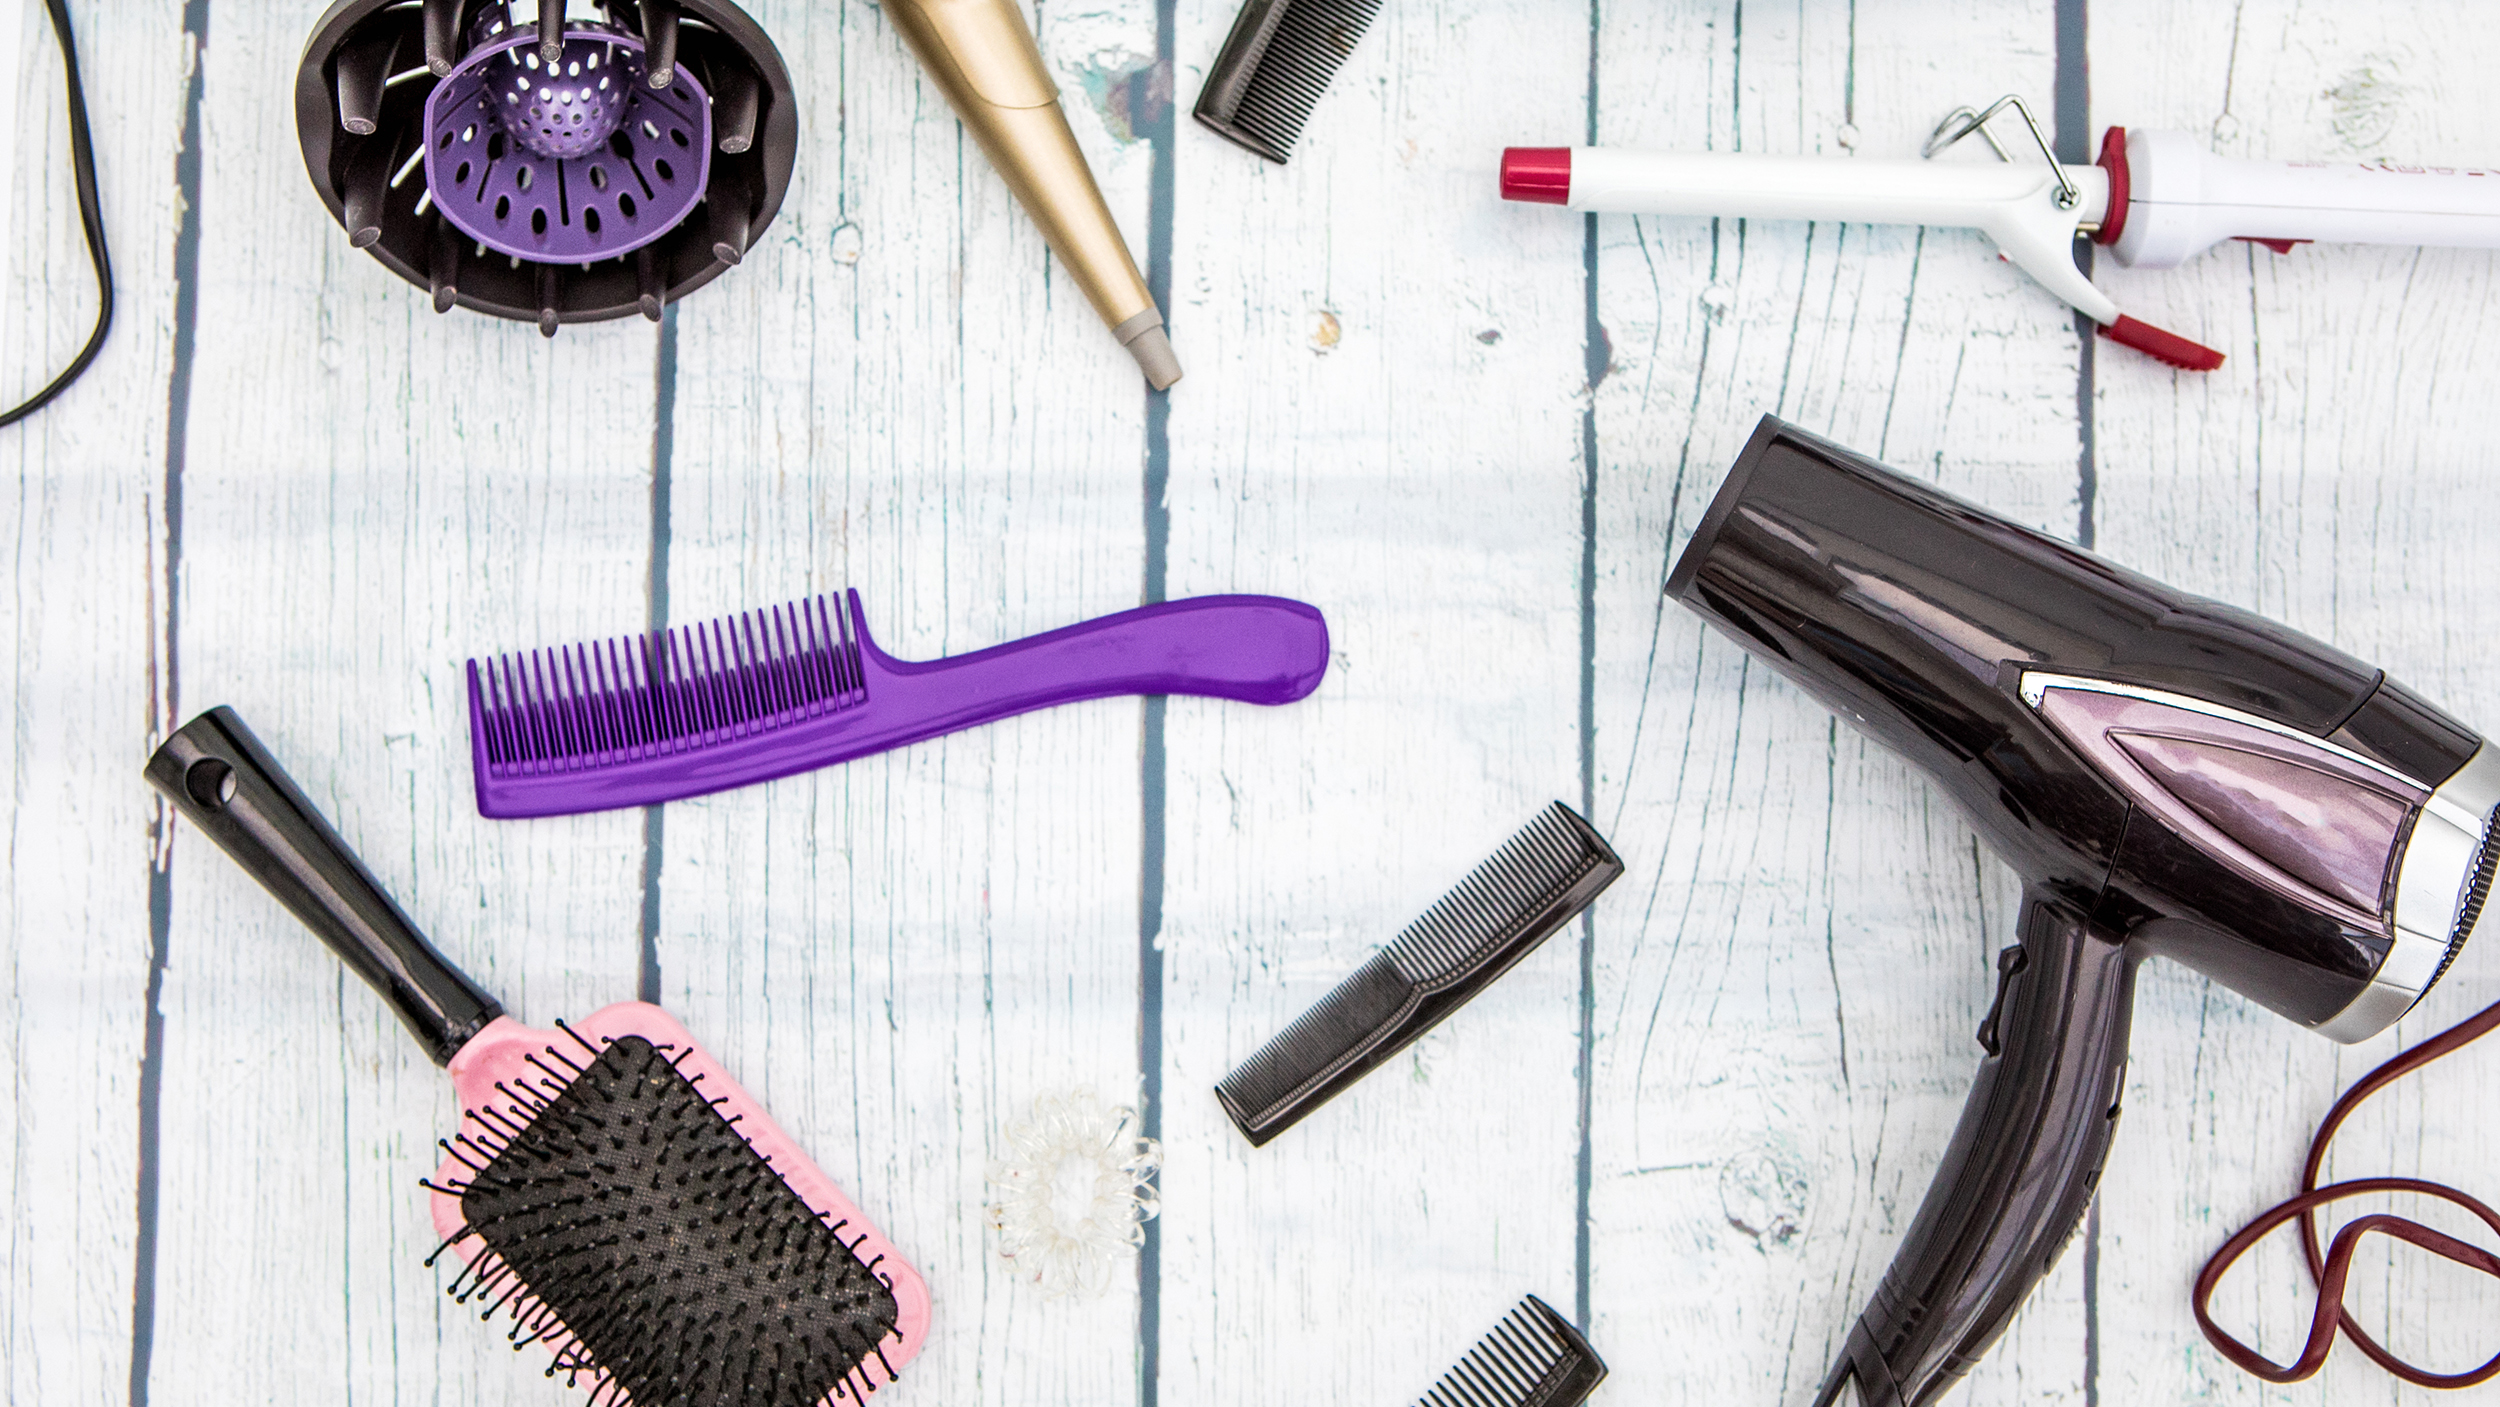 The 7 Best Tools For Curly Hair According To Hair Experts